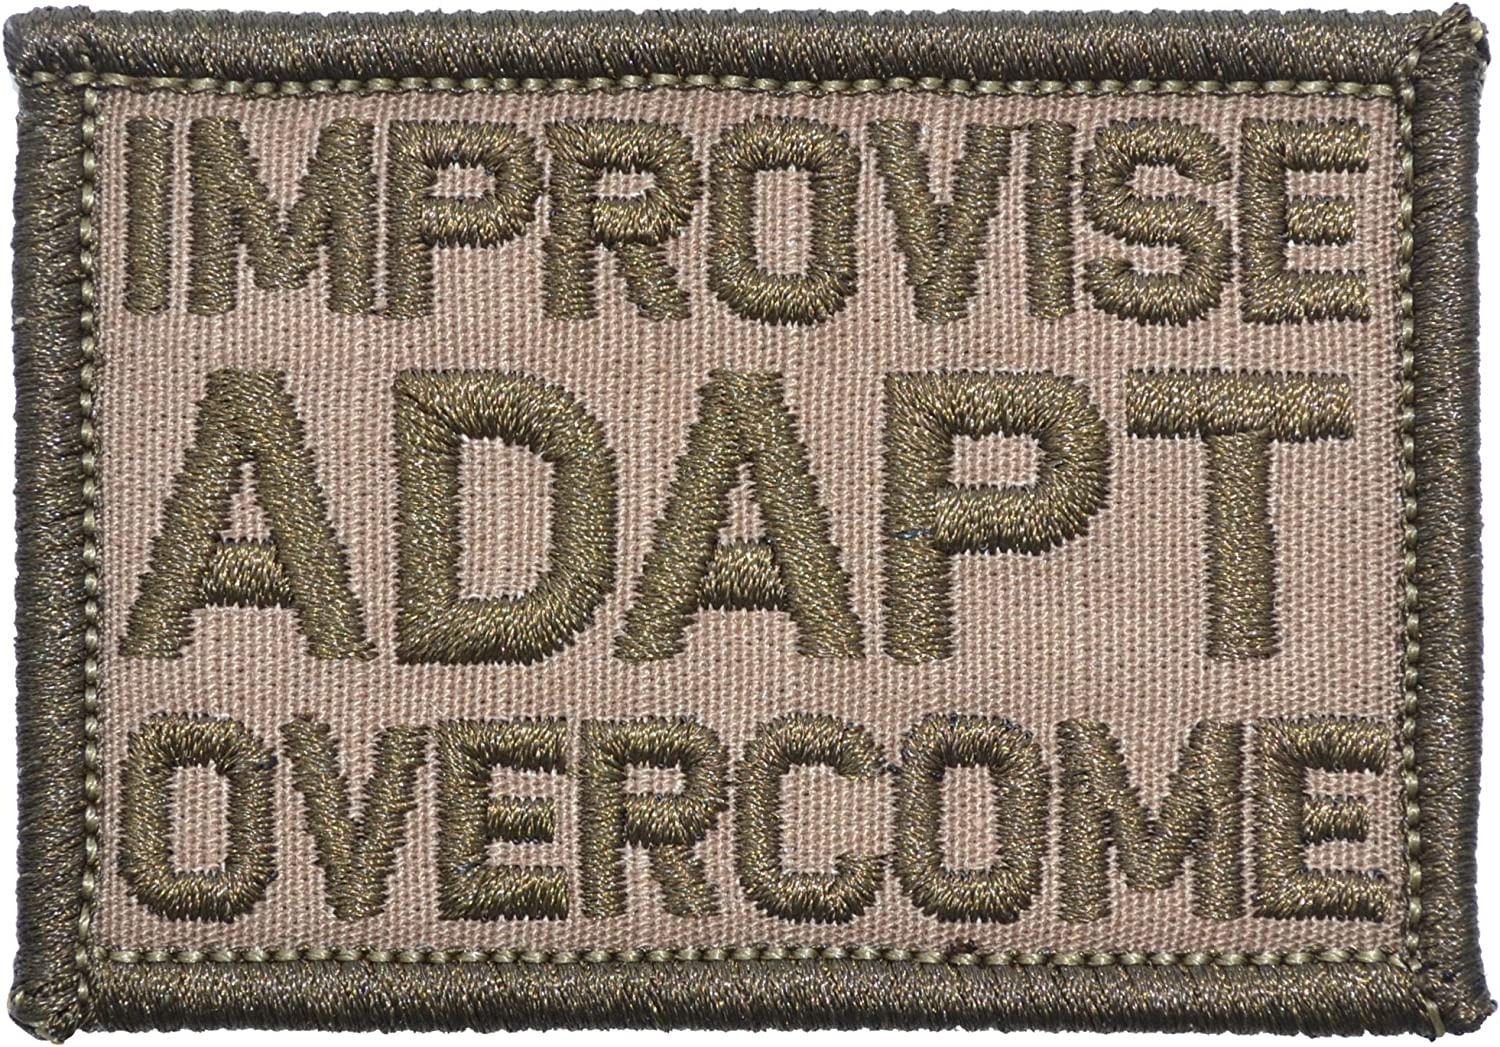 Olive Drab 2x3 Morale Patch Improvise Adapt Overcome